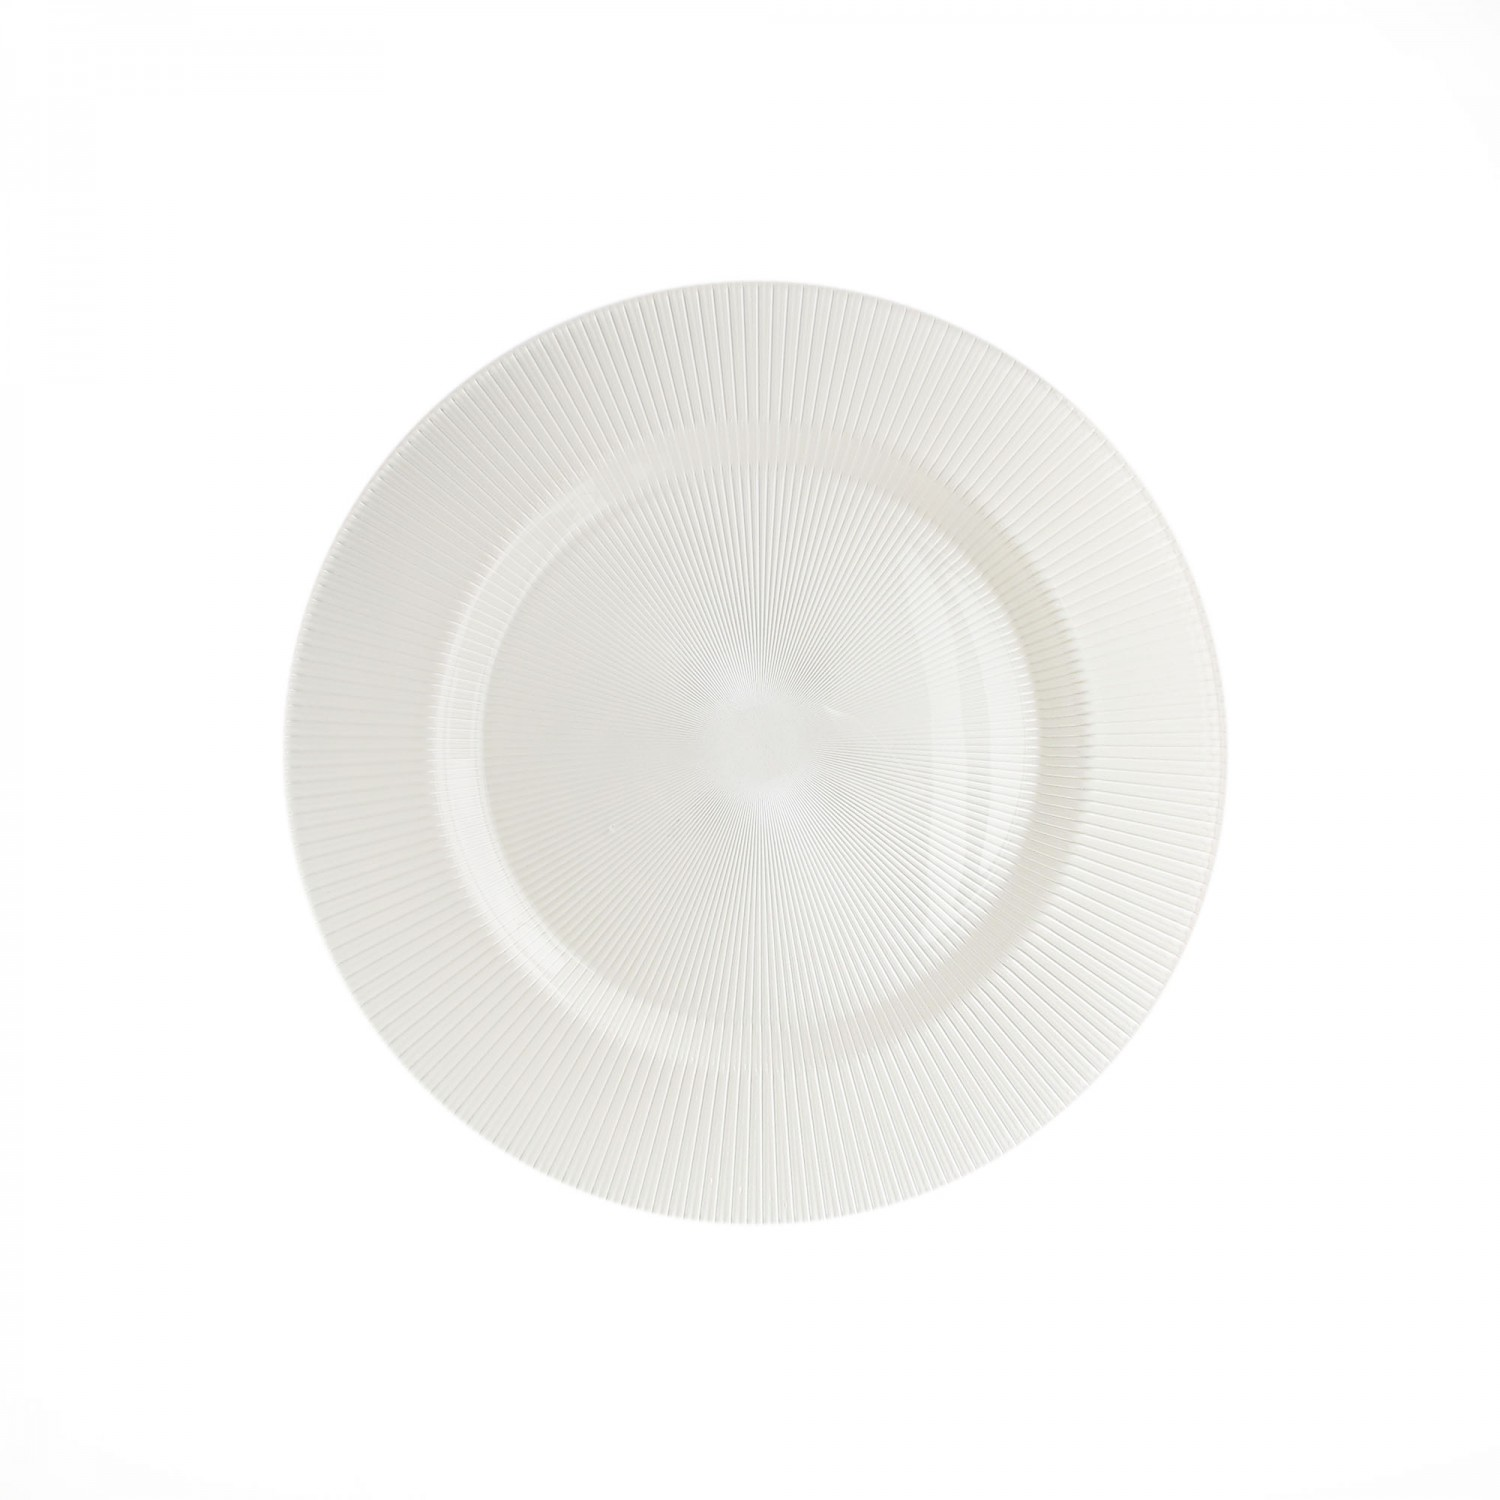 The Jay Companies 1470344 Round Sunray Pearl White Glass Charger Plate 13""